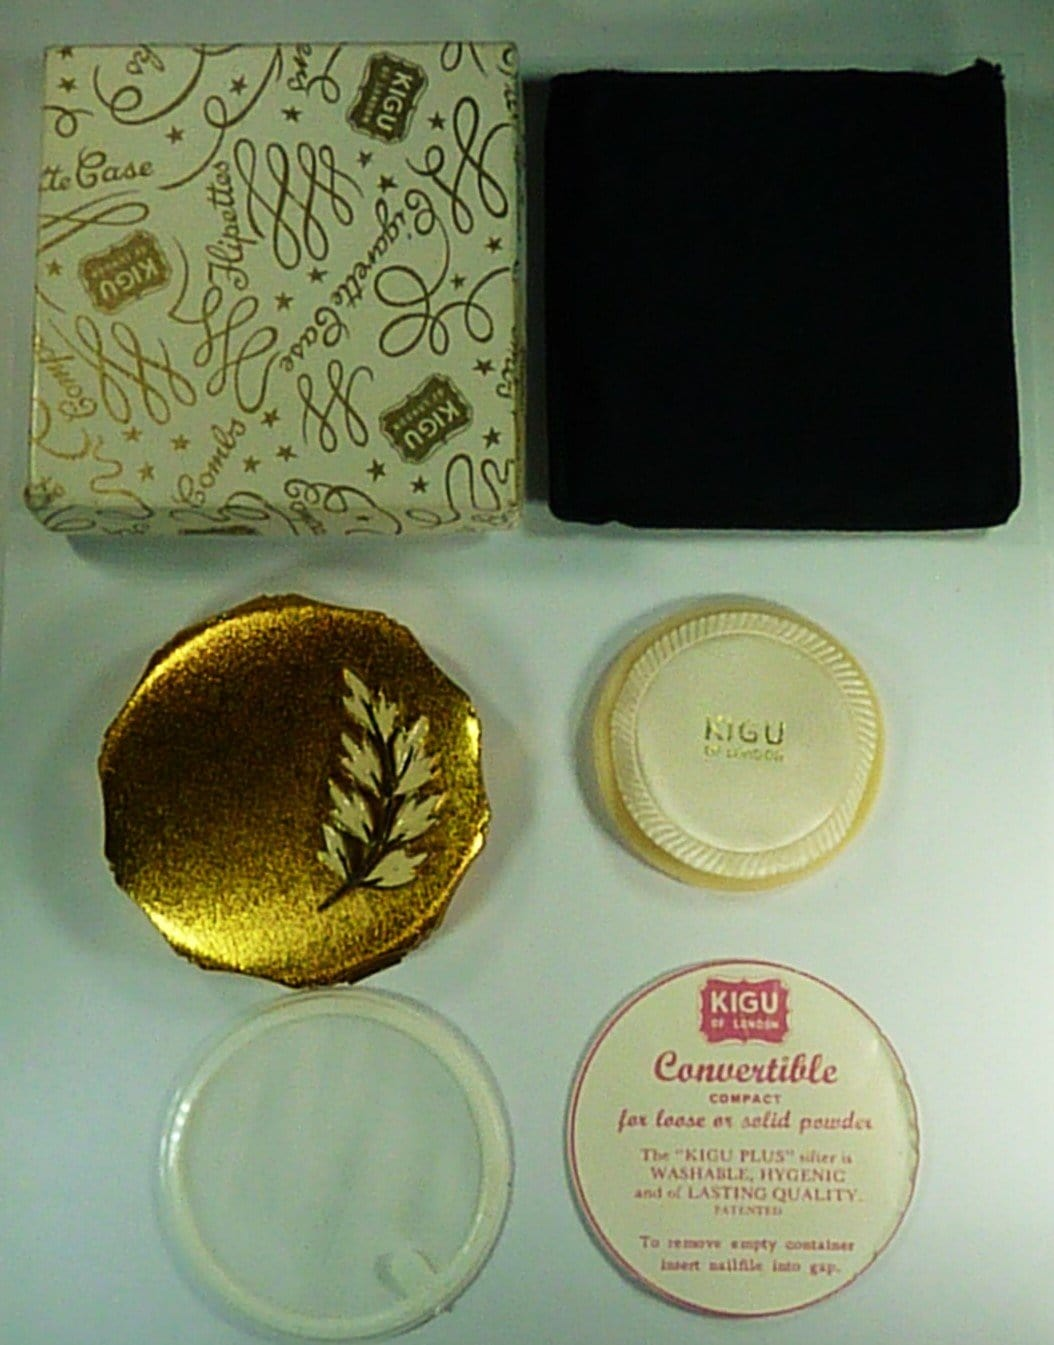 Unused Boxed Kigu Powder Compact